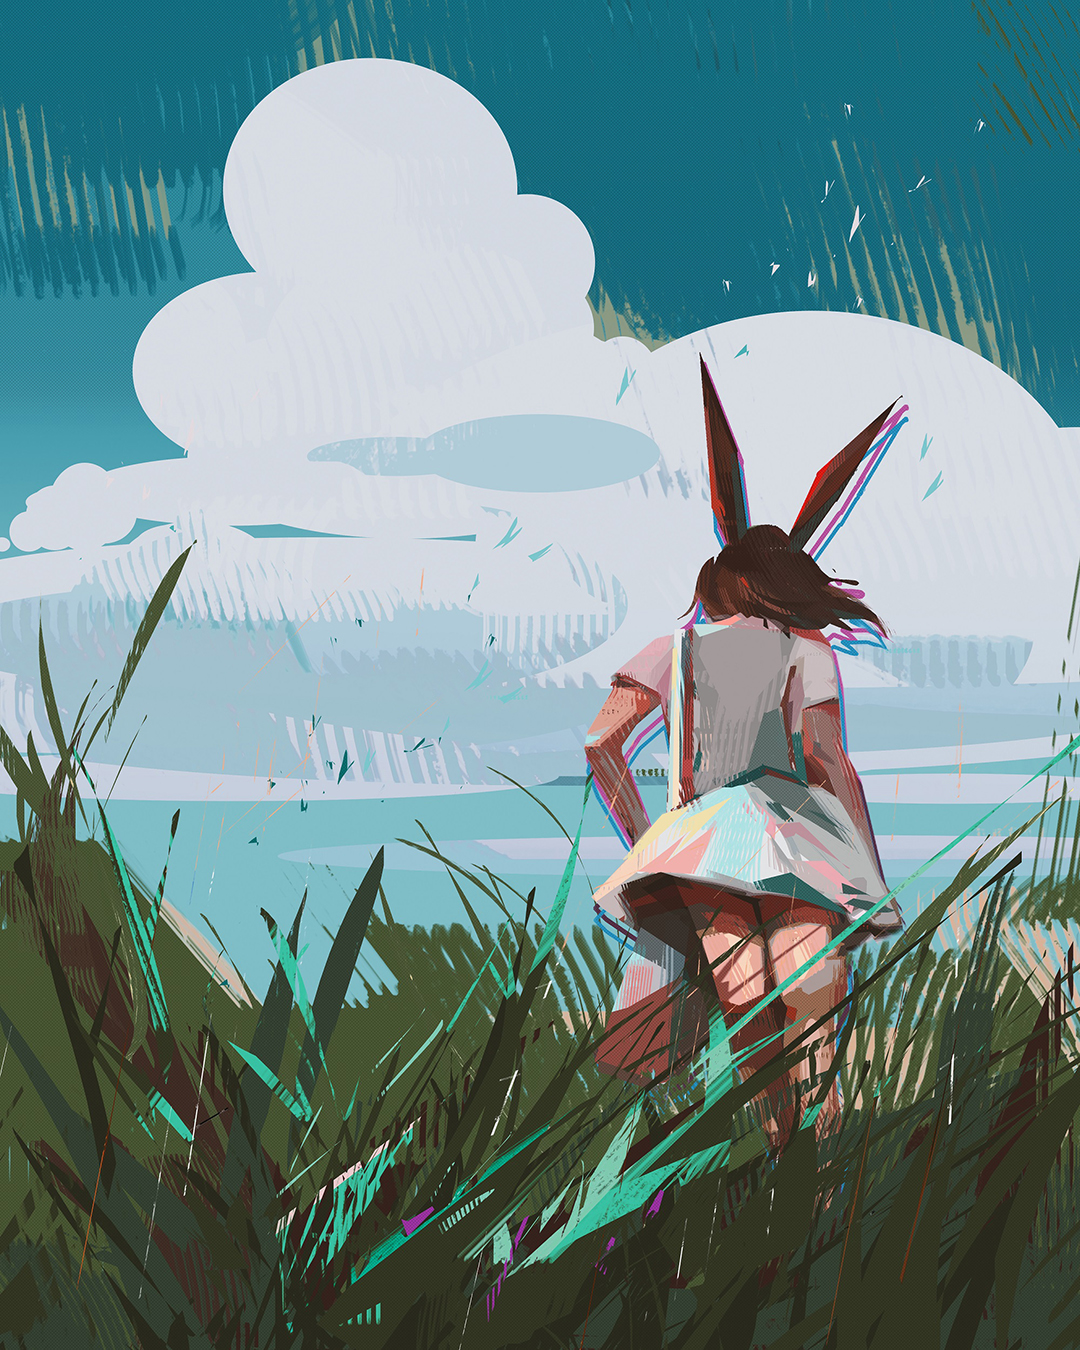 GirlsclubAsia-Illustrator-Donglu Yu-Bunny_in_the_Field_Hires